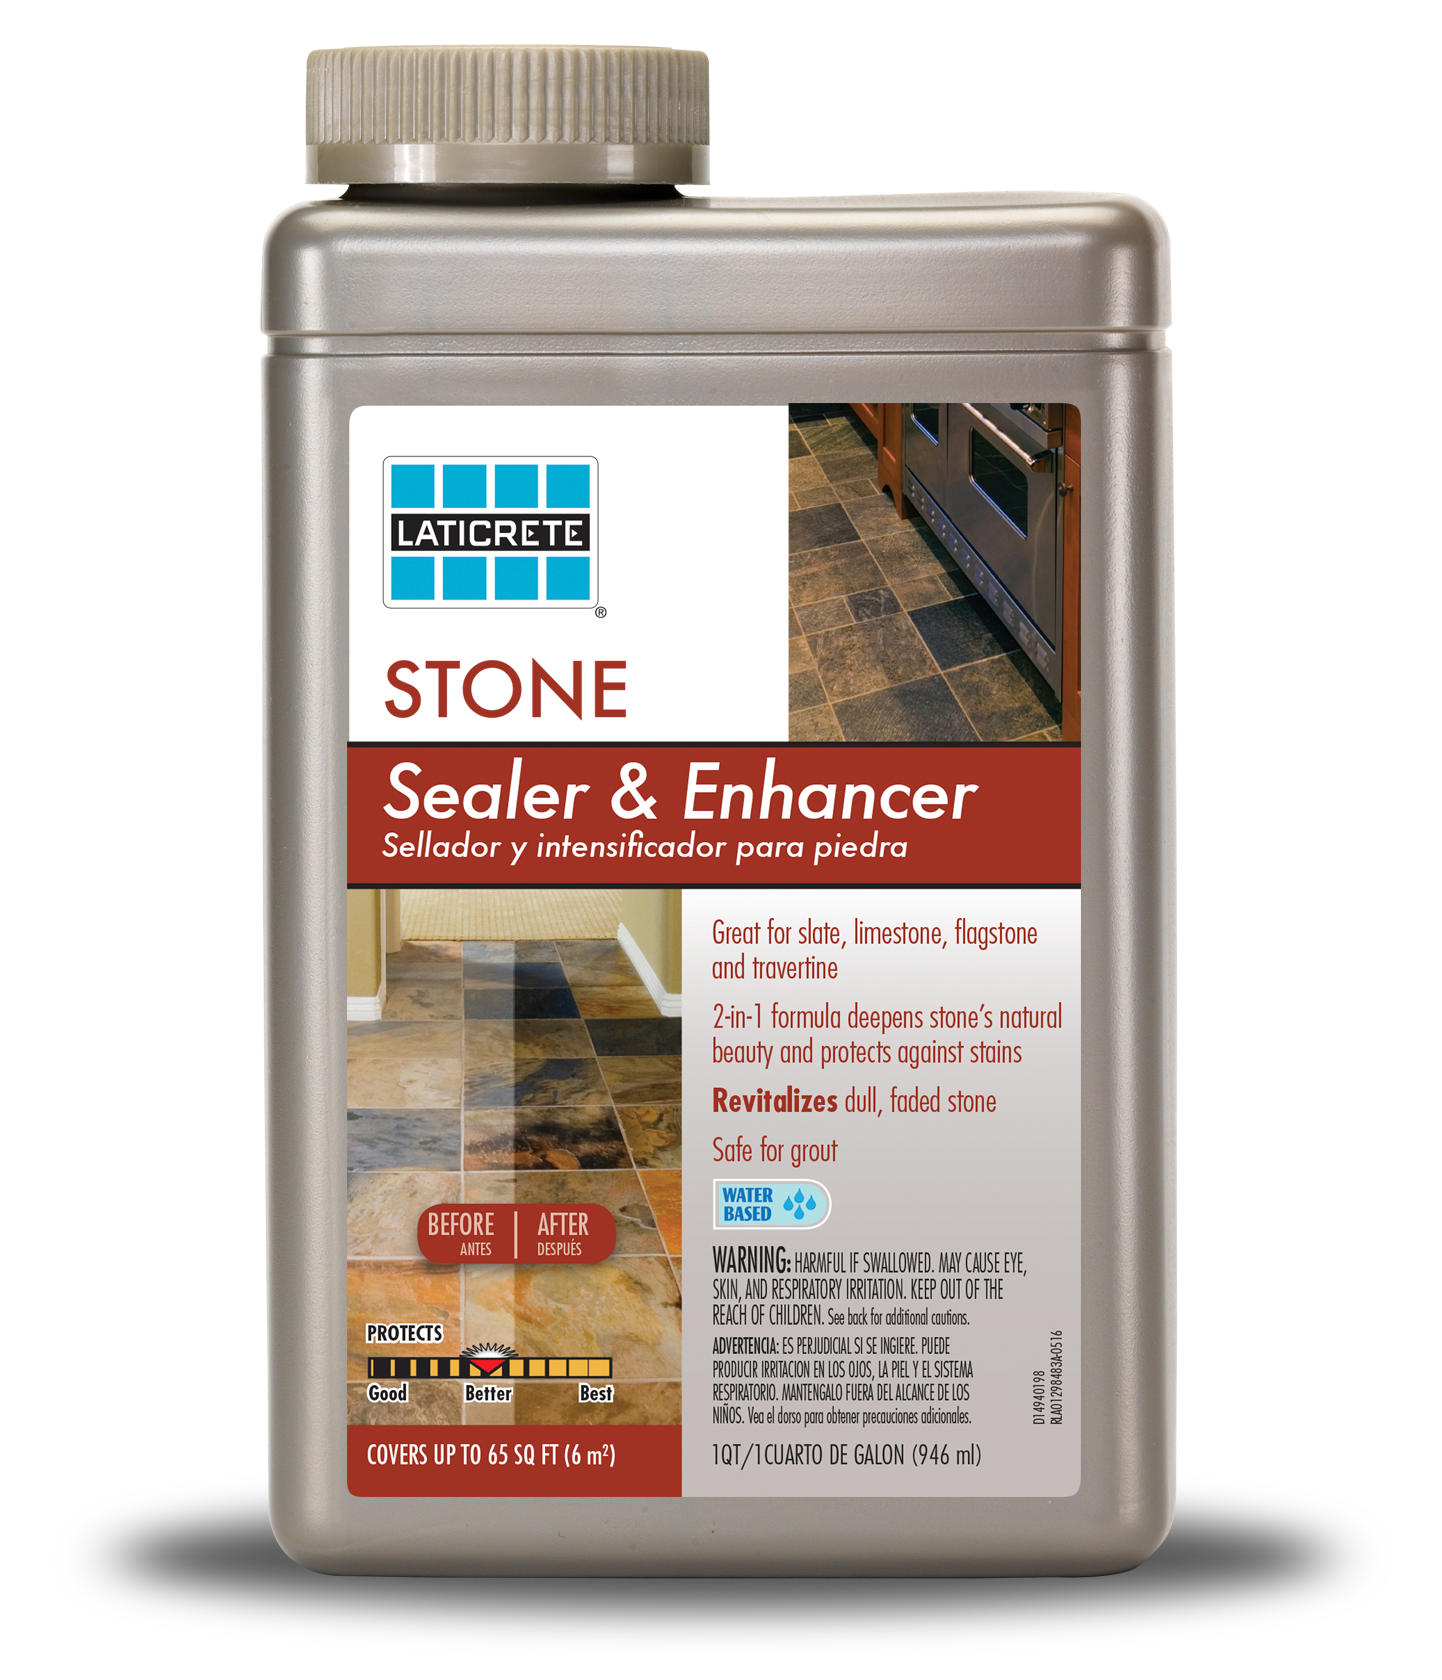 LATICRETE® Stone Sealer & Enhancer